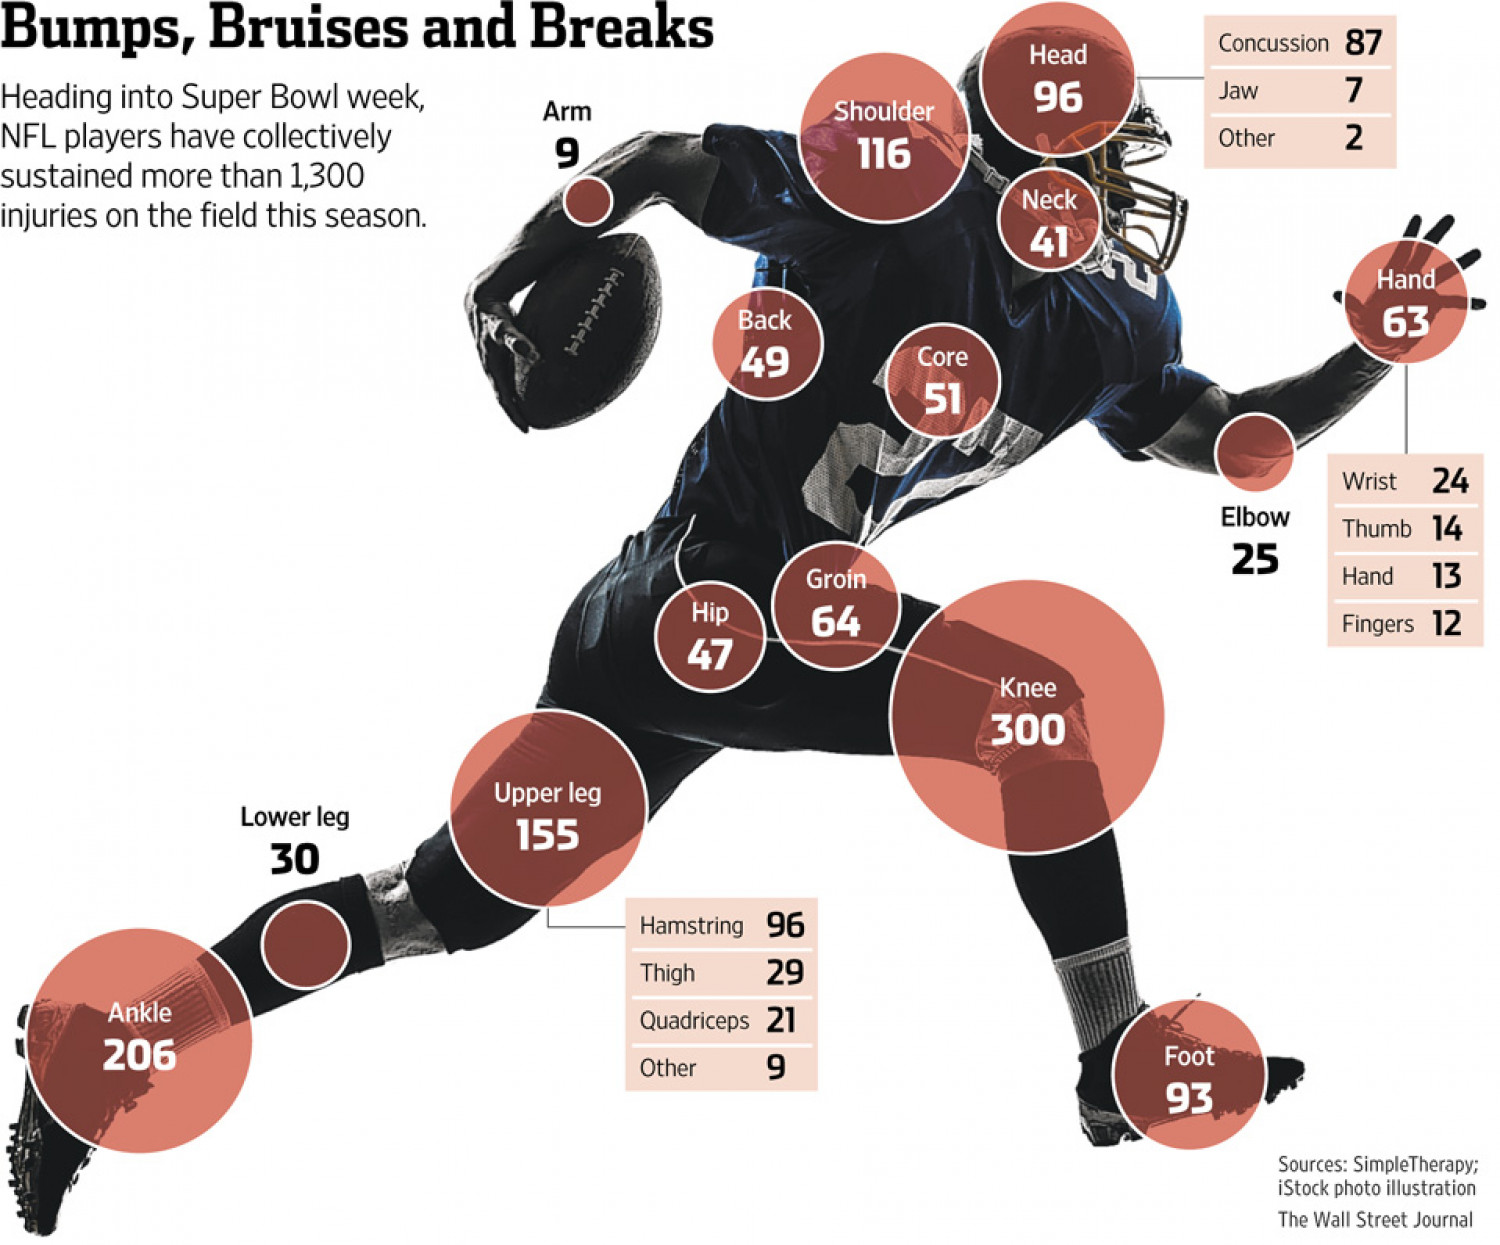 Bumps, Bruises and Breaks Infographic